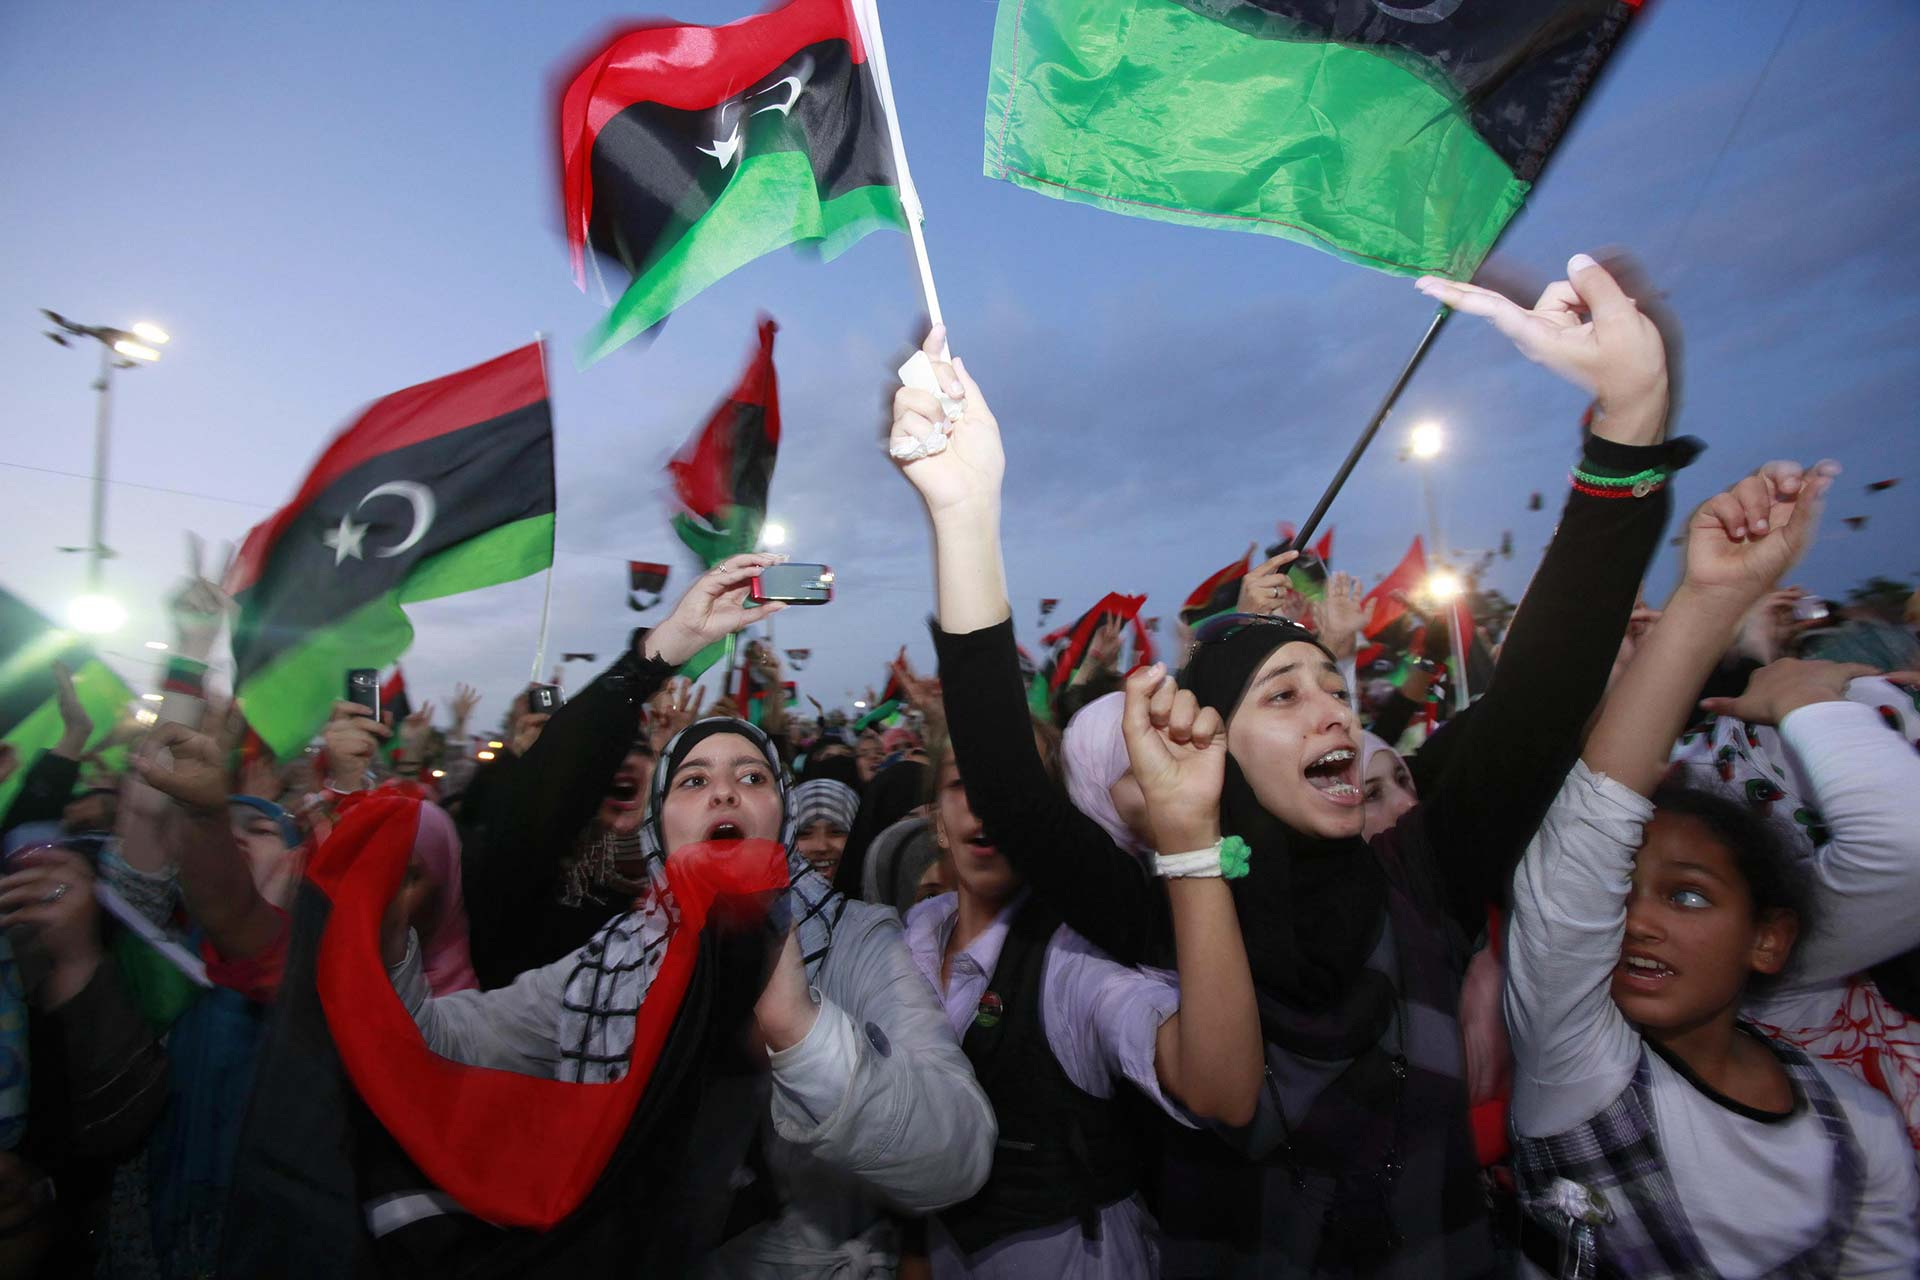 Women celebrate the overthrow of the Gaddafi regime in Misrata, Libya. Credit: Youssef Boudlal / Reuters